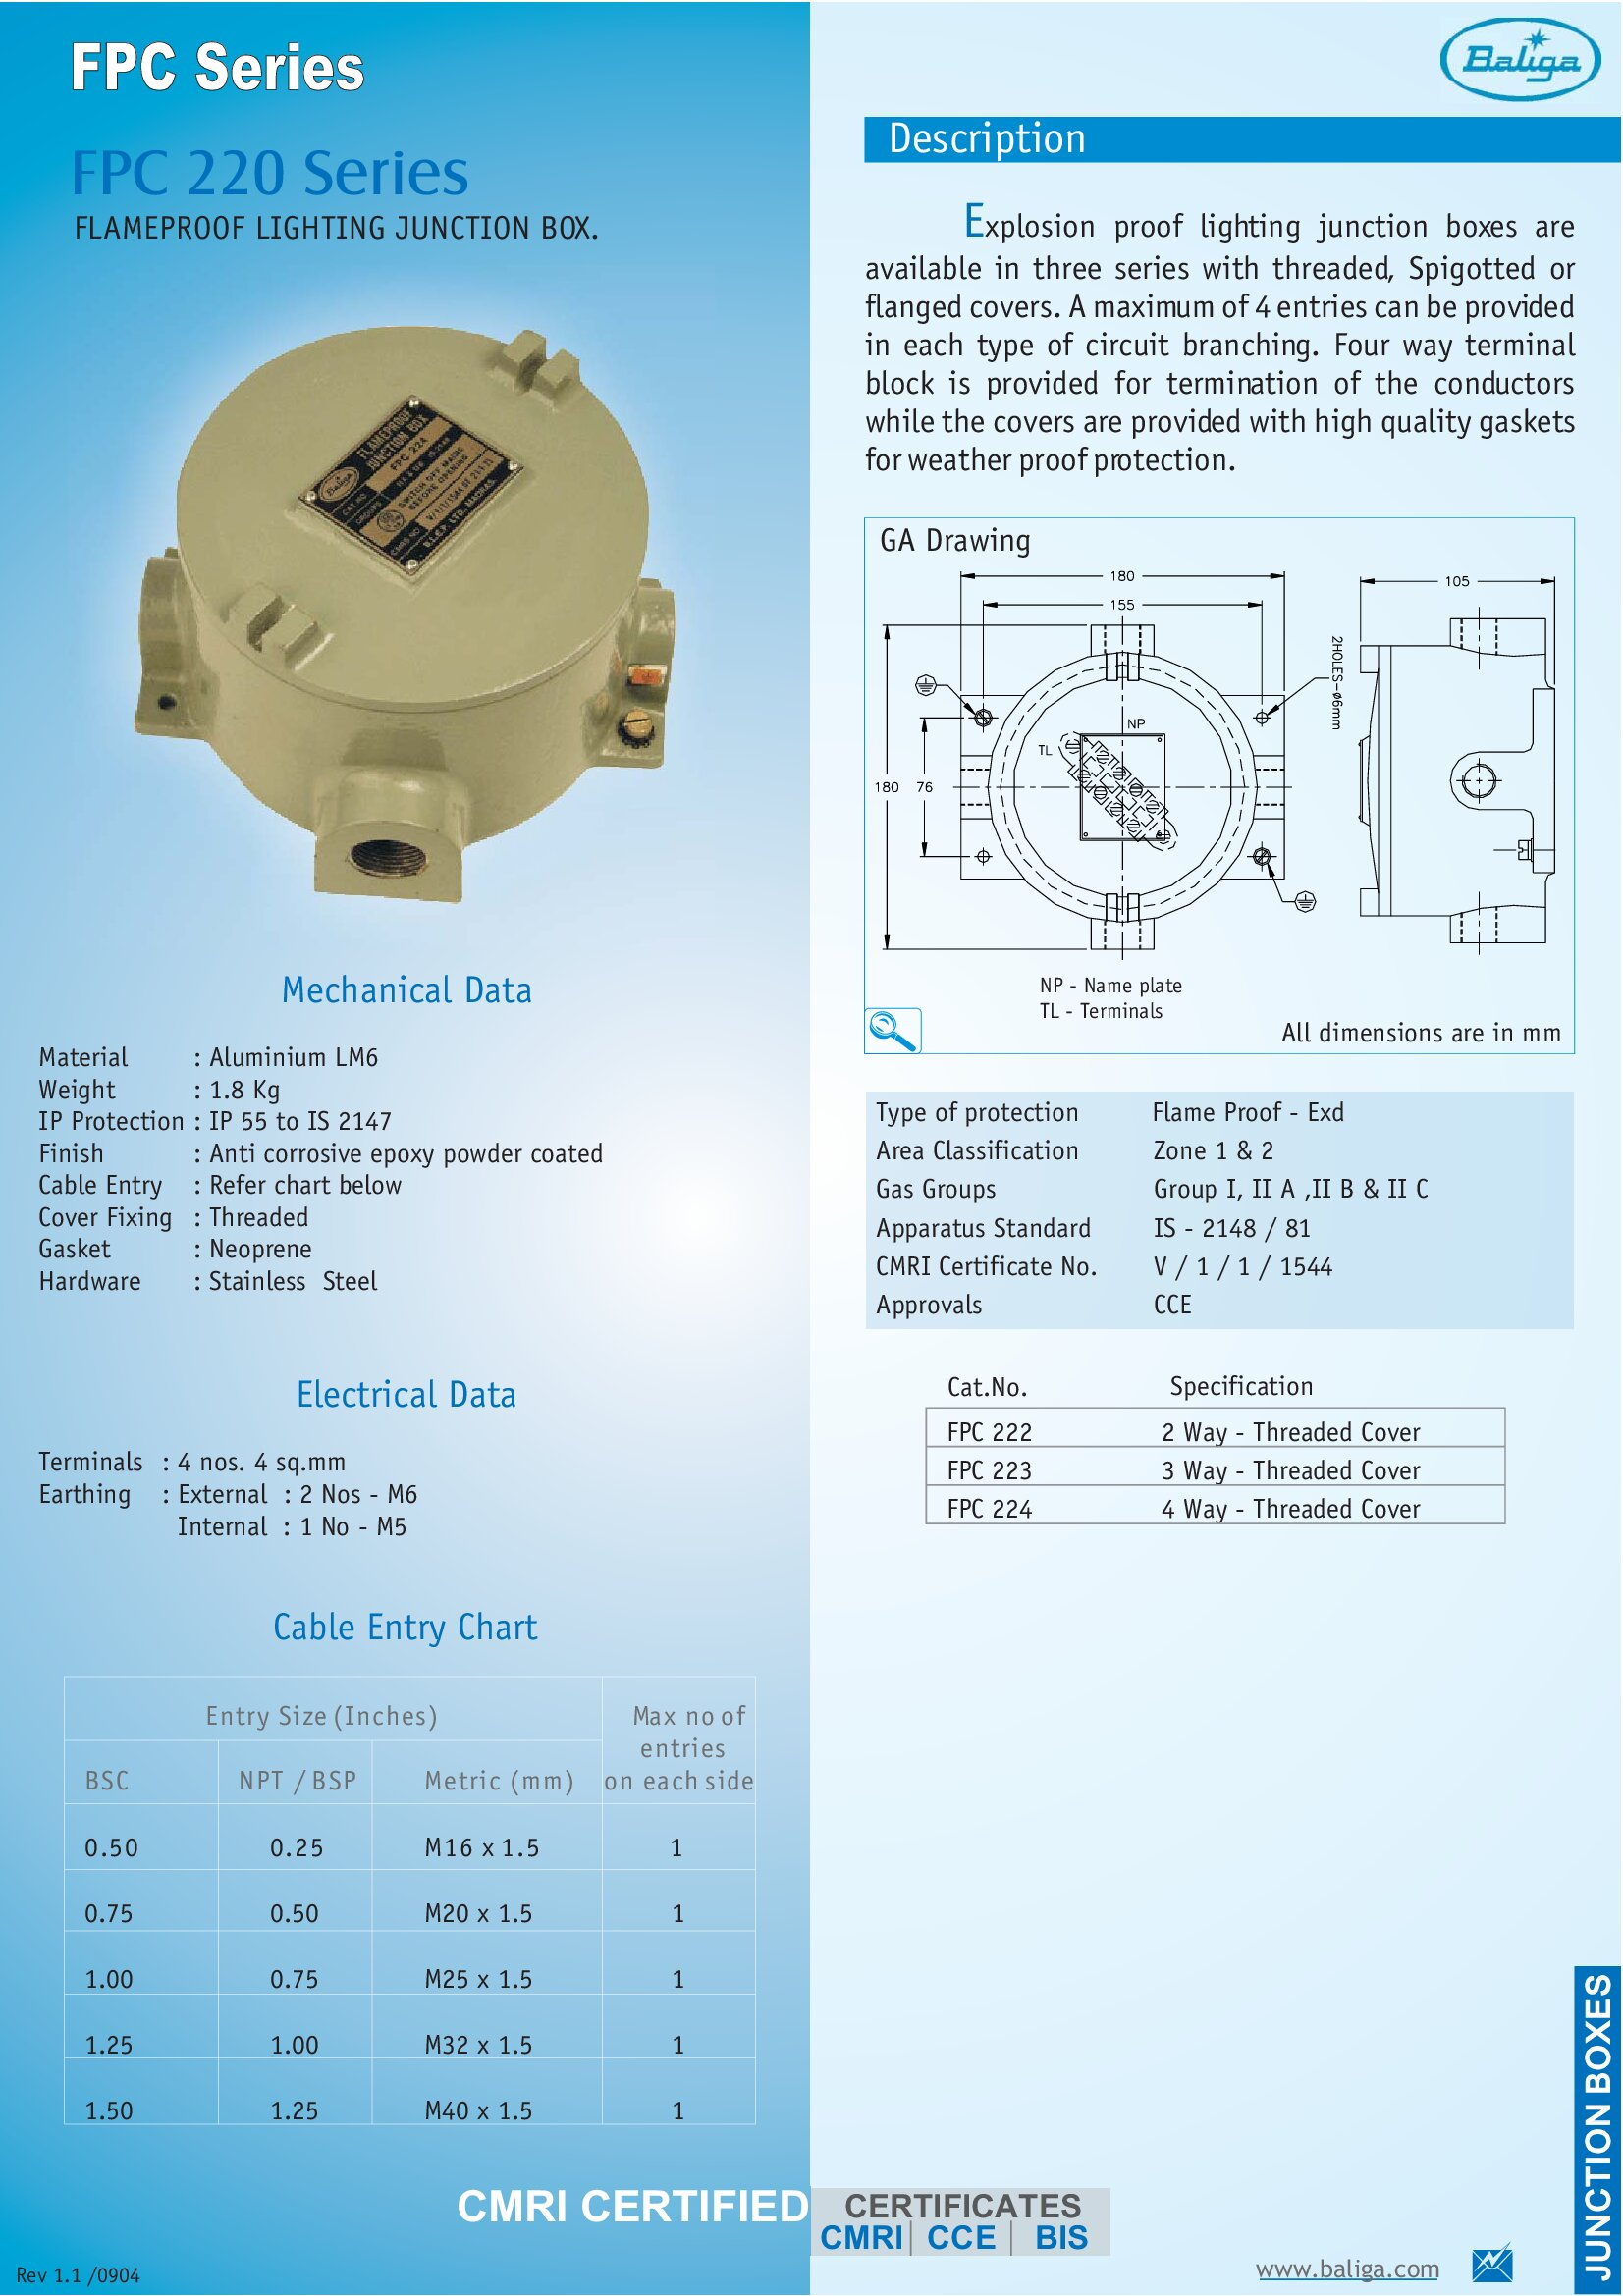 Flameproof Lighting Junction Box FPC 220 Series